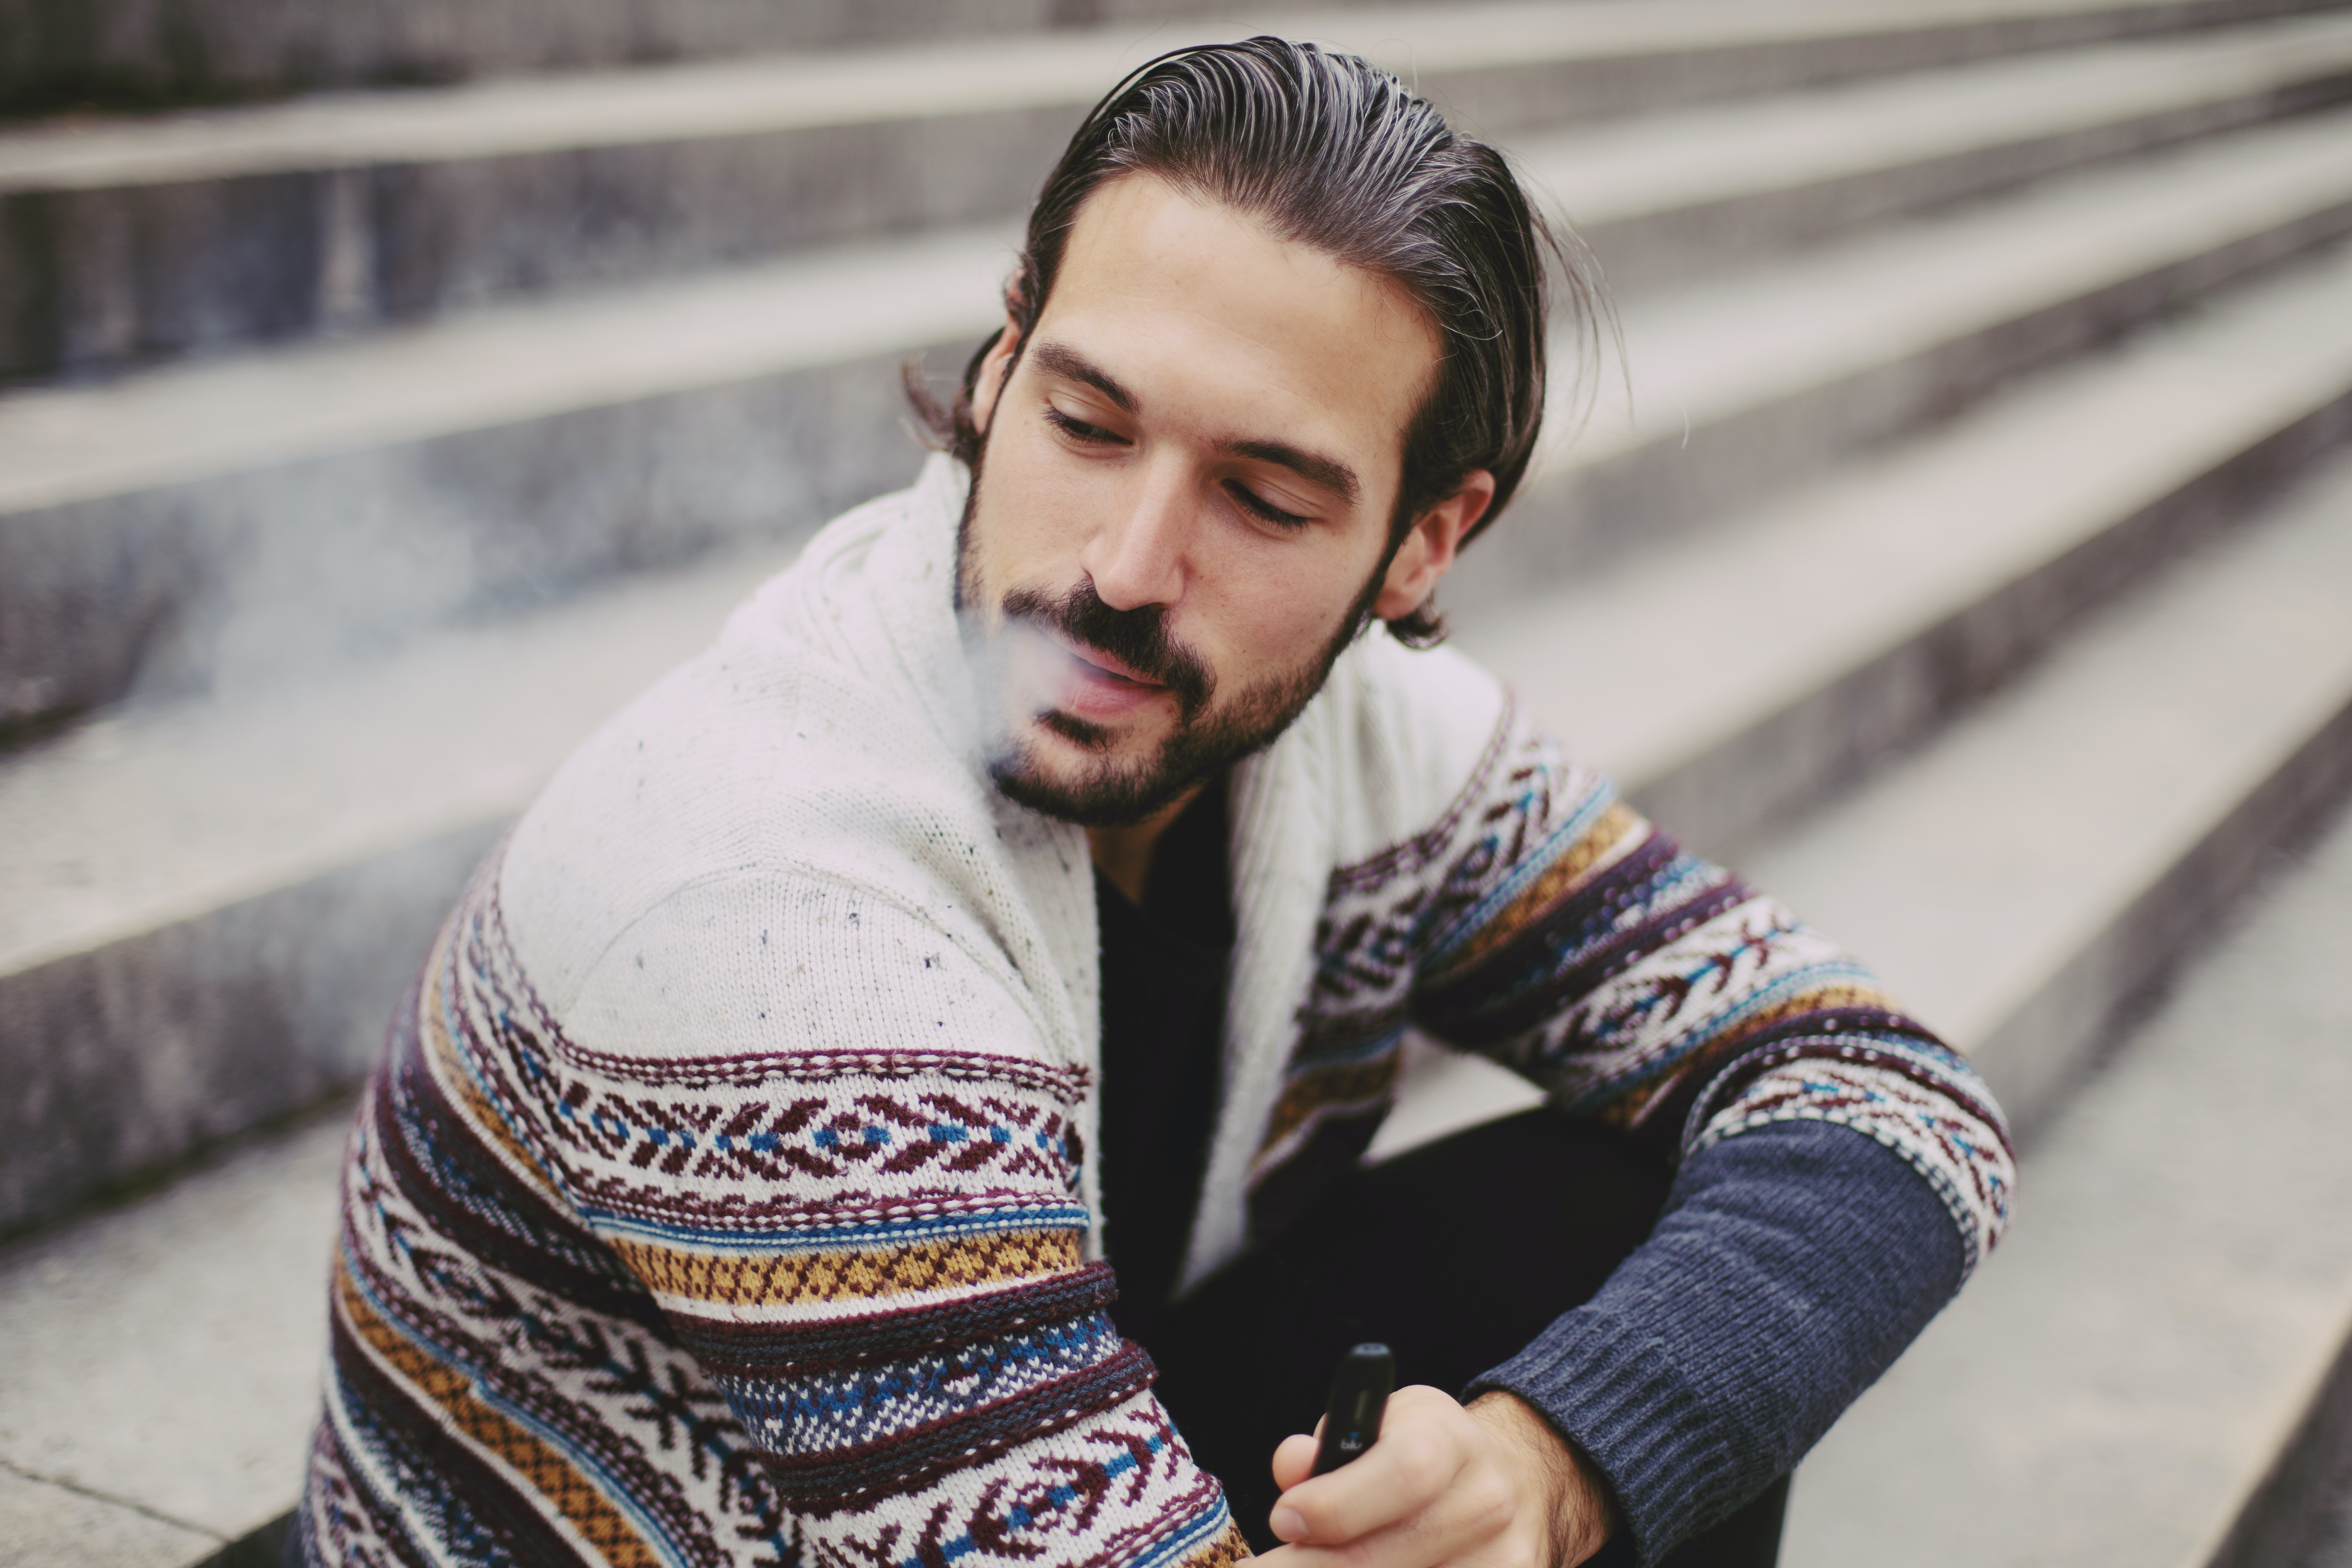 Vaping Lung Disease Is Less Likely In States Where Marijuana Is Legal